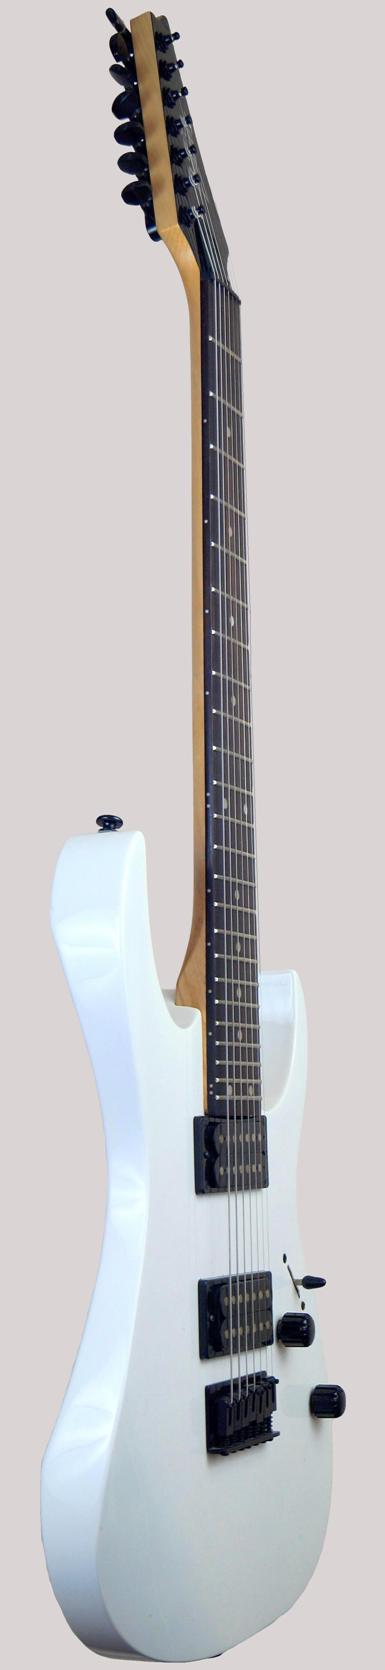 white solid electric Ibanez 7 string guitar at Ukulele Corner